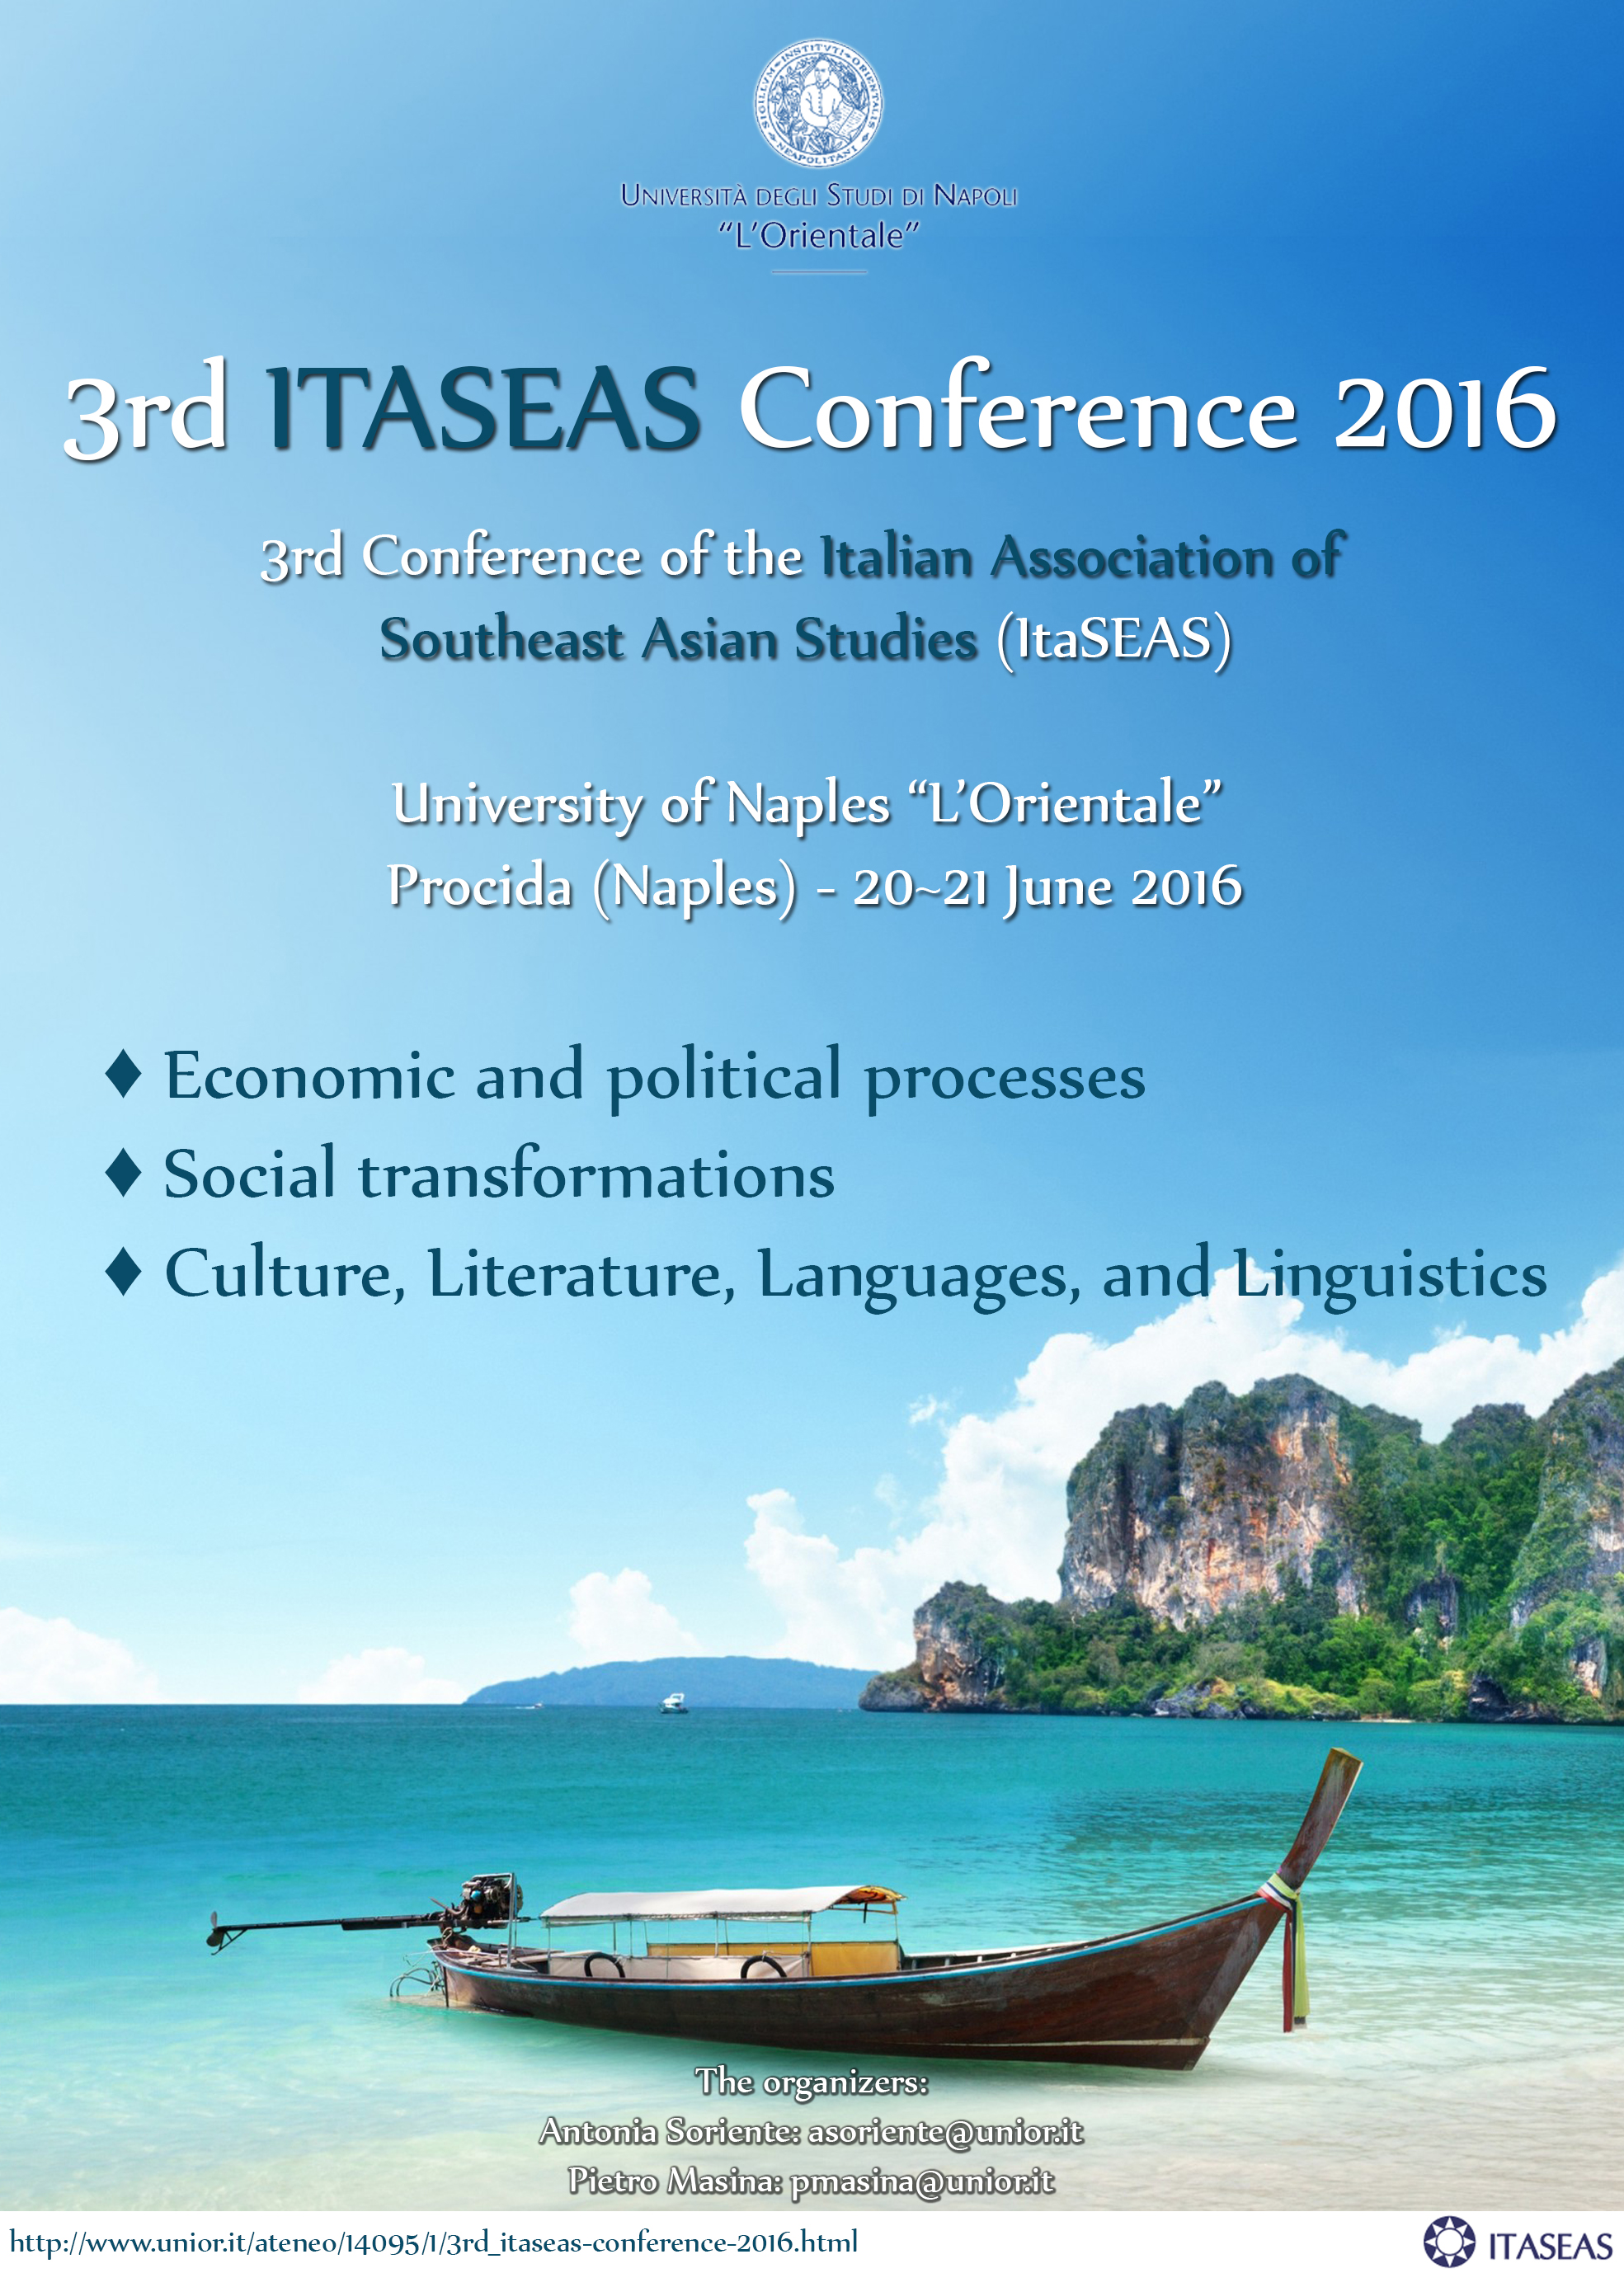 3rd_ITASEAS Conference 2016